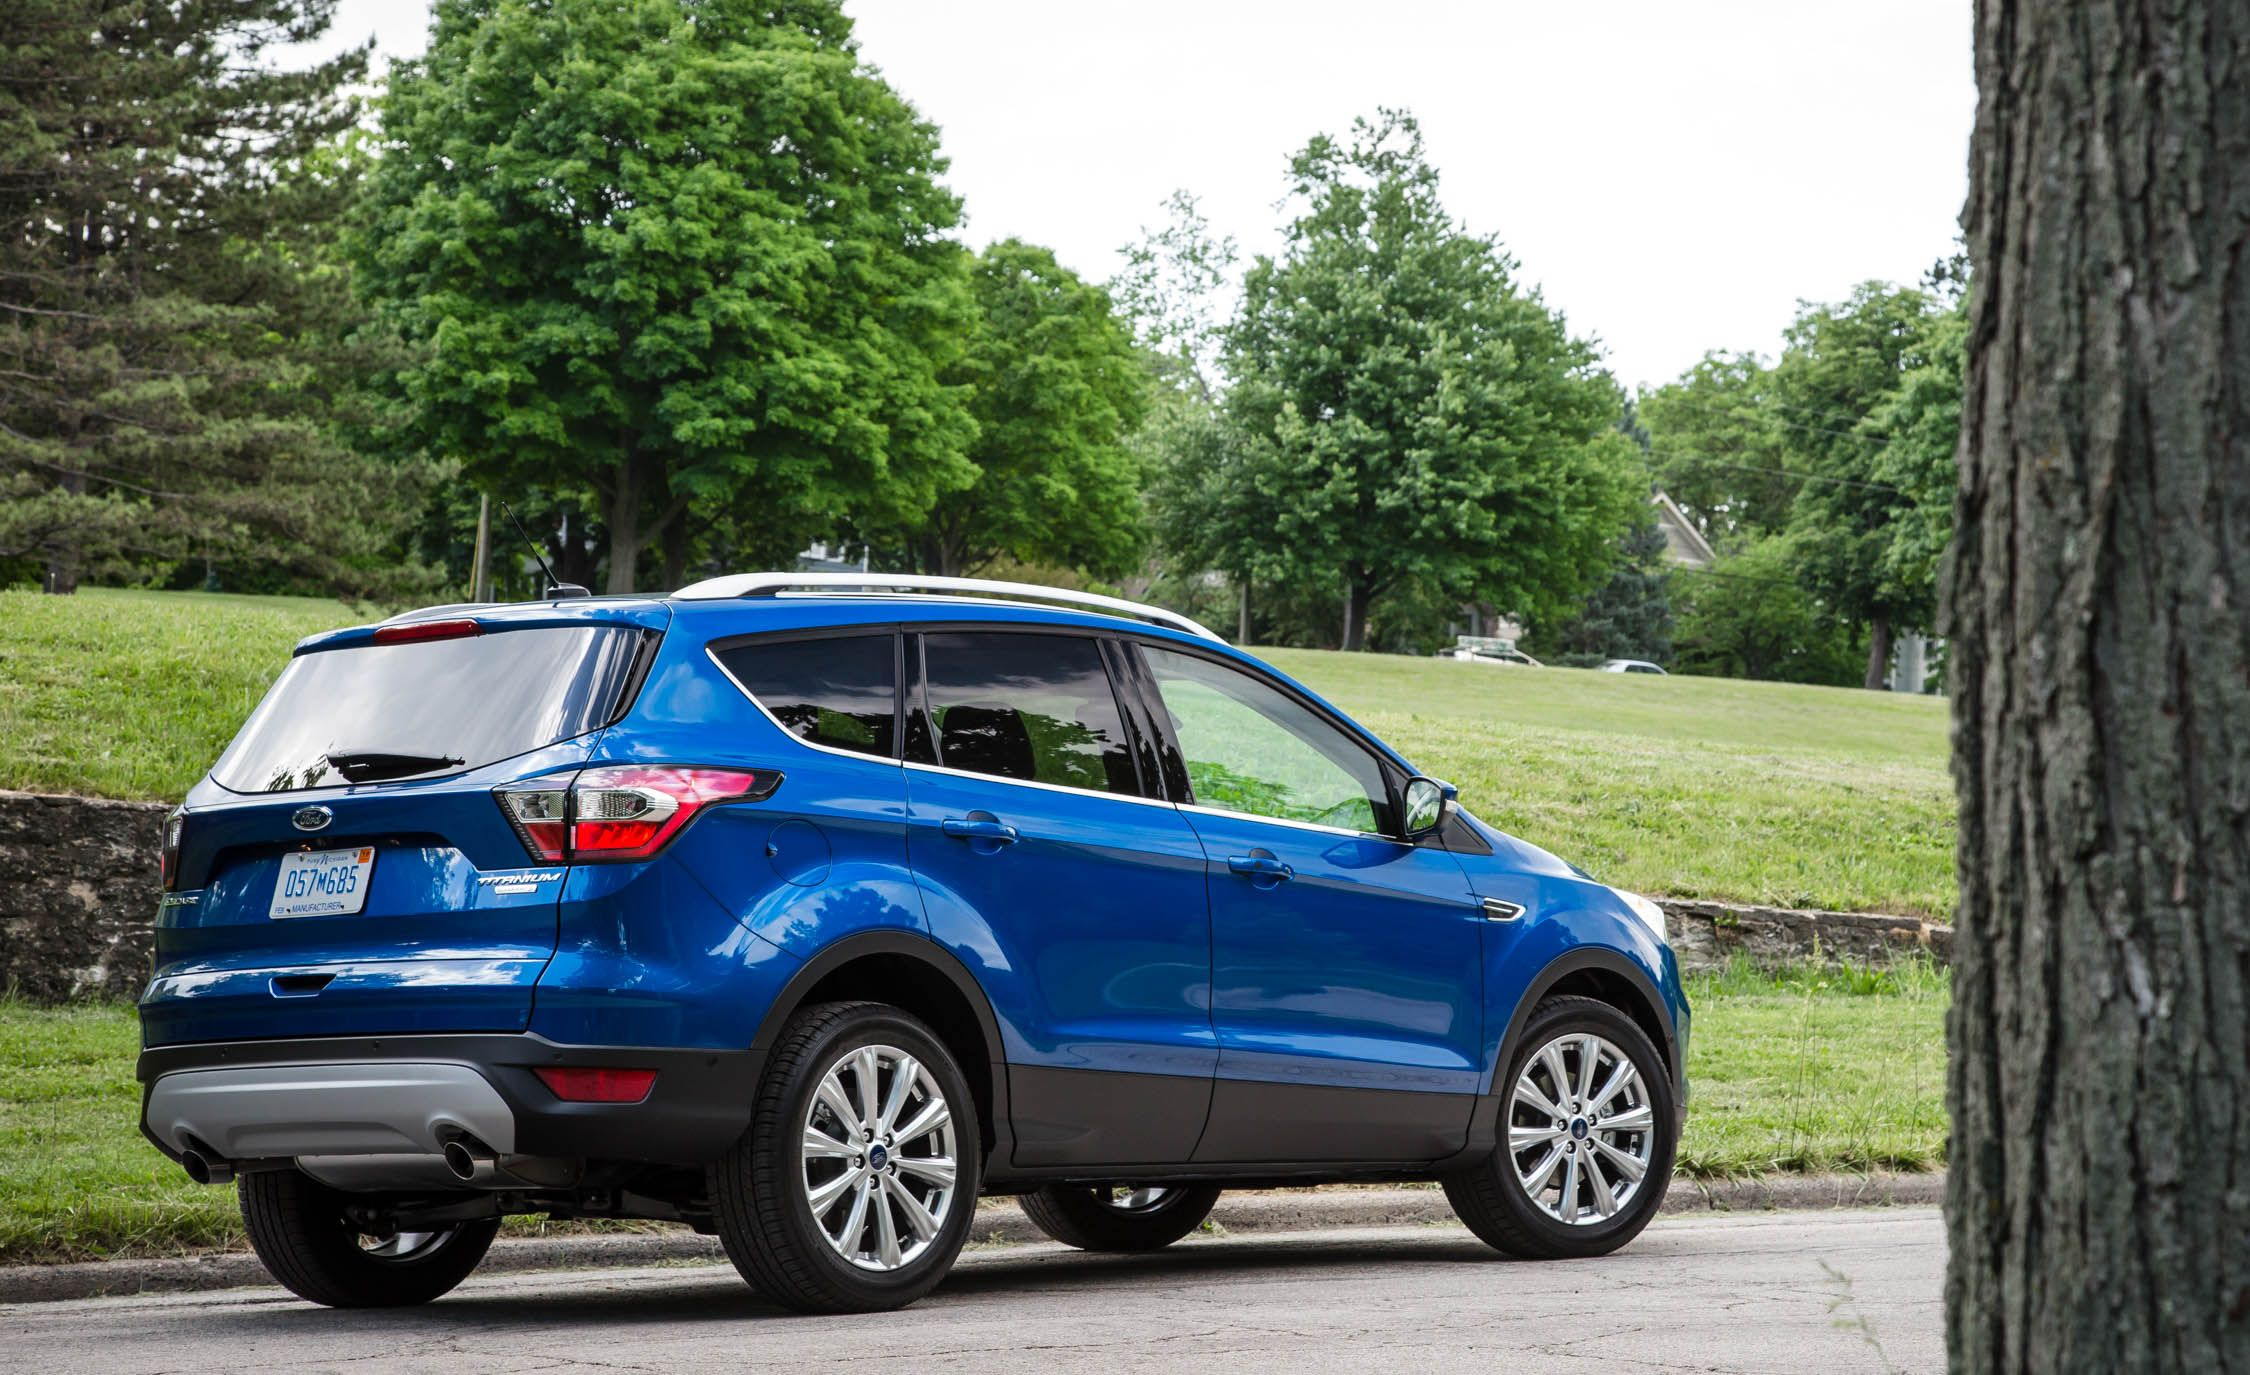 Ford Escape Reviews | Ford Escape Price, Photos, and Specs | Car and Driver